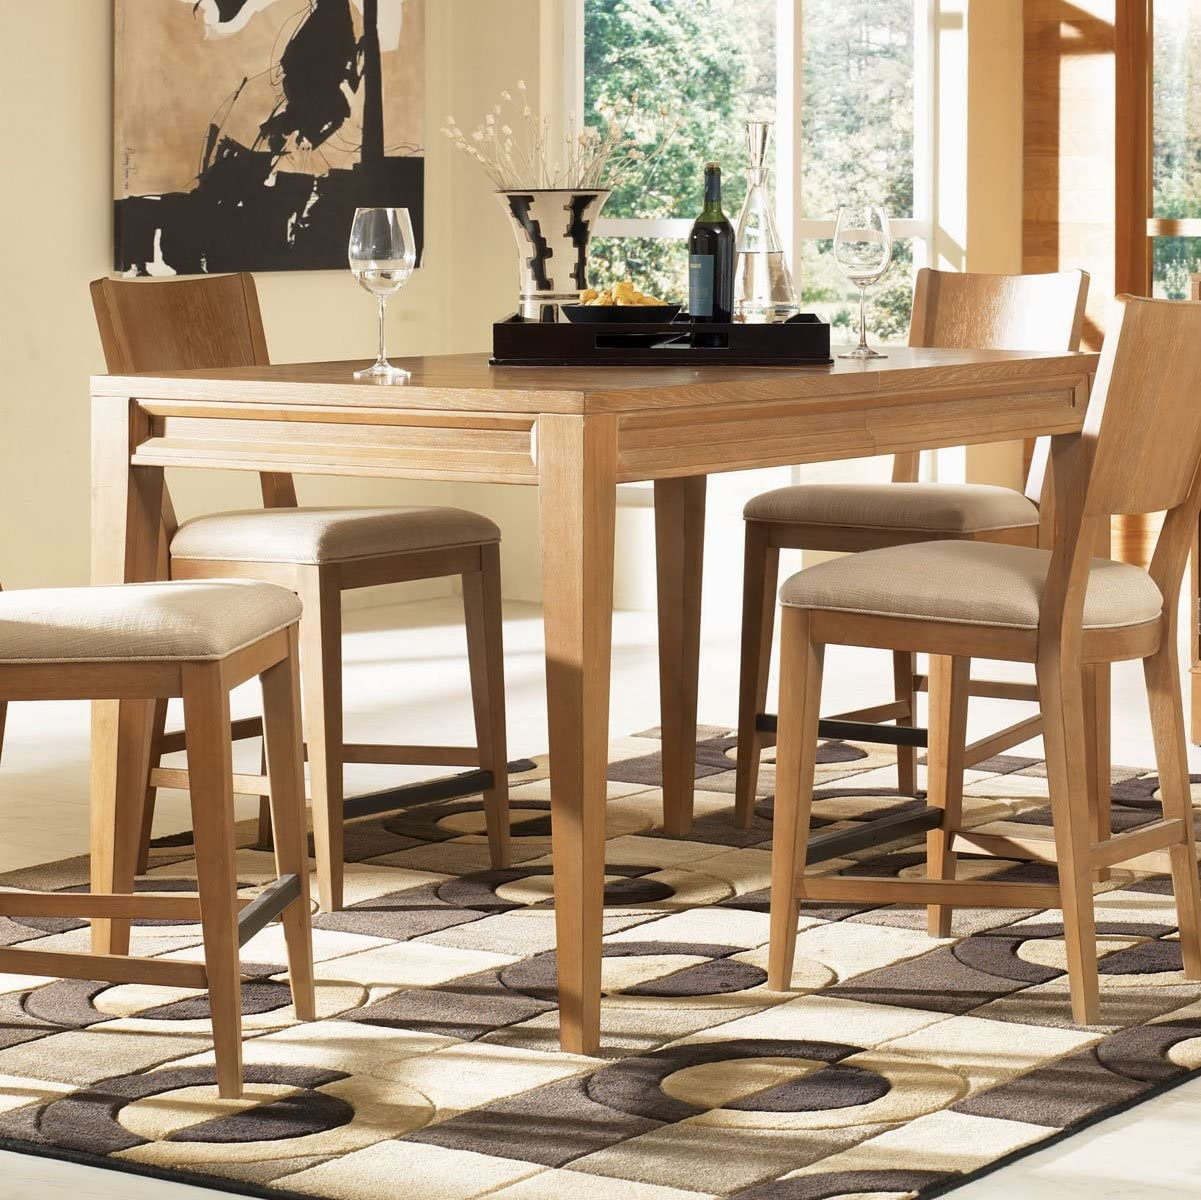 Solid Wood Counter Height Table. Dining Set Consisting ...